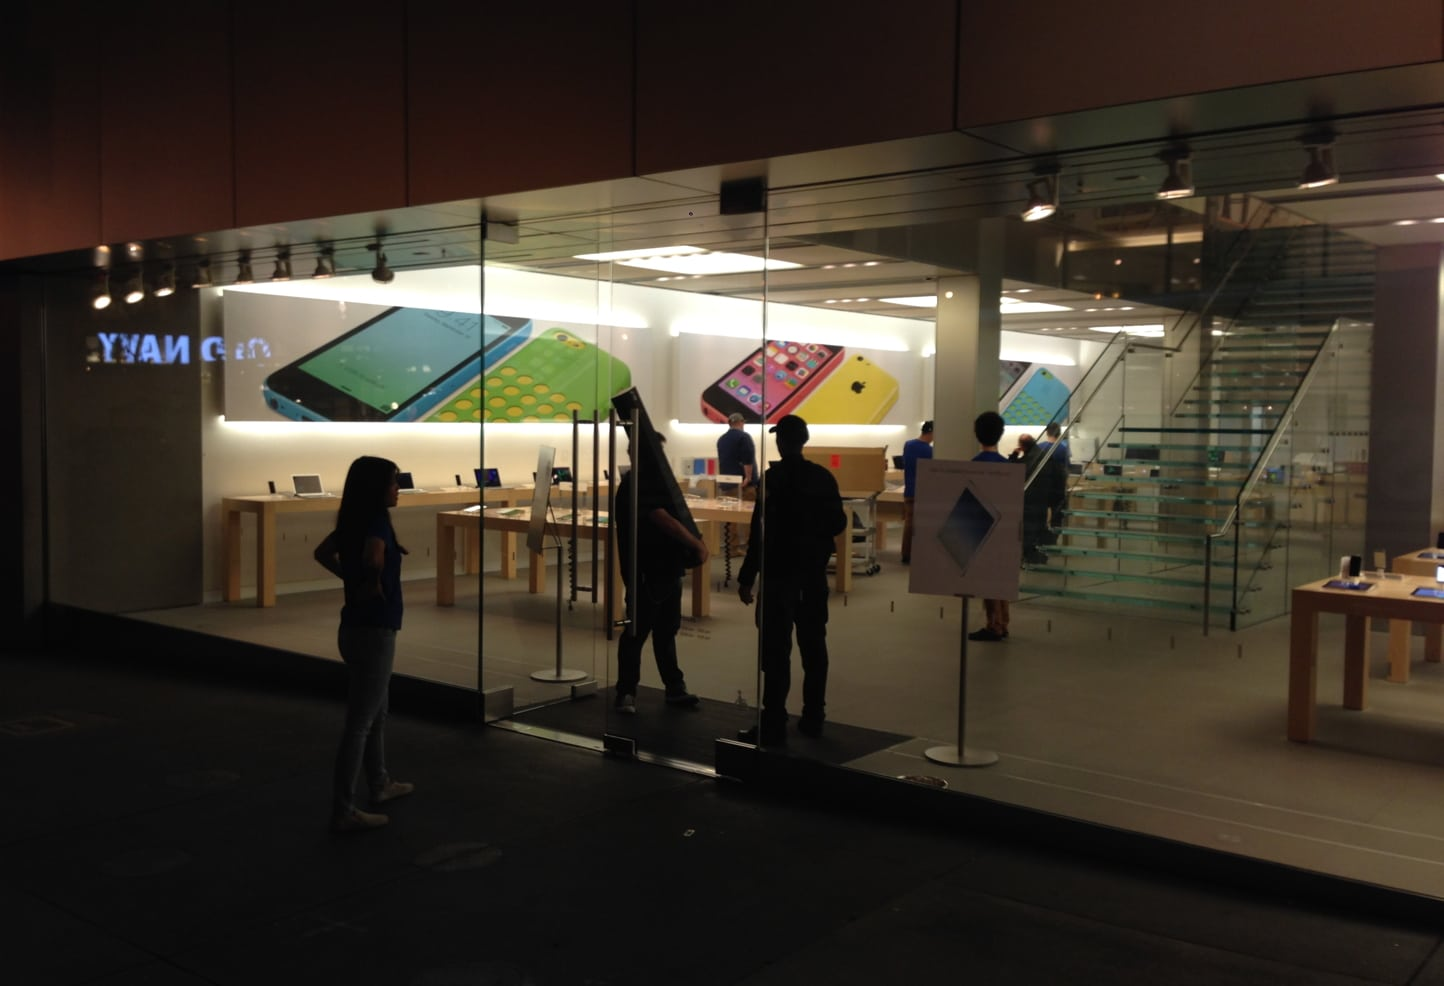 The San Francisco Apple Store at 5:00 am